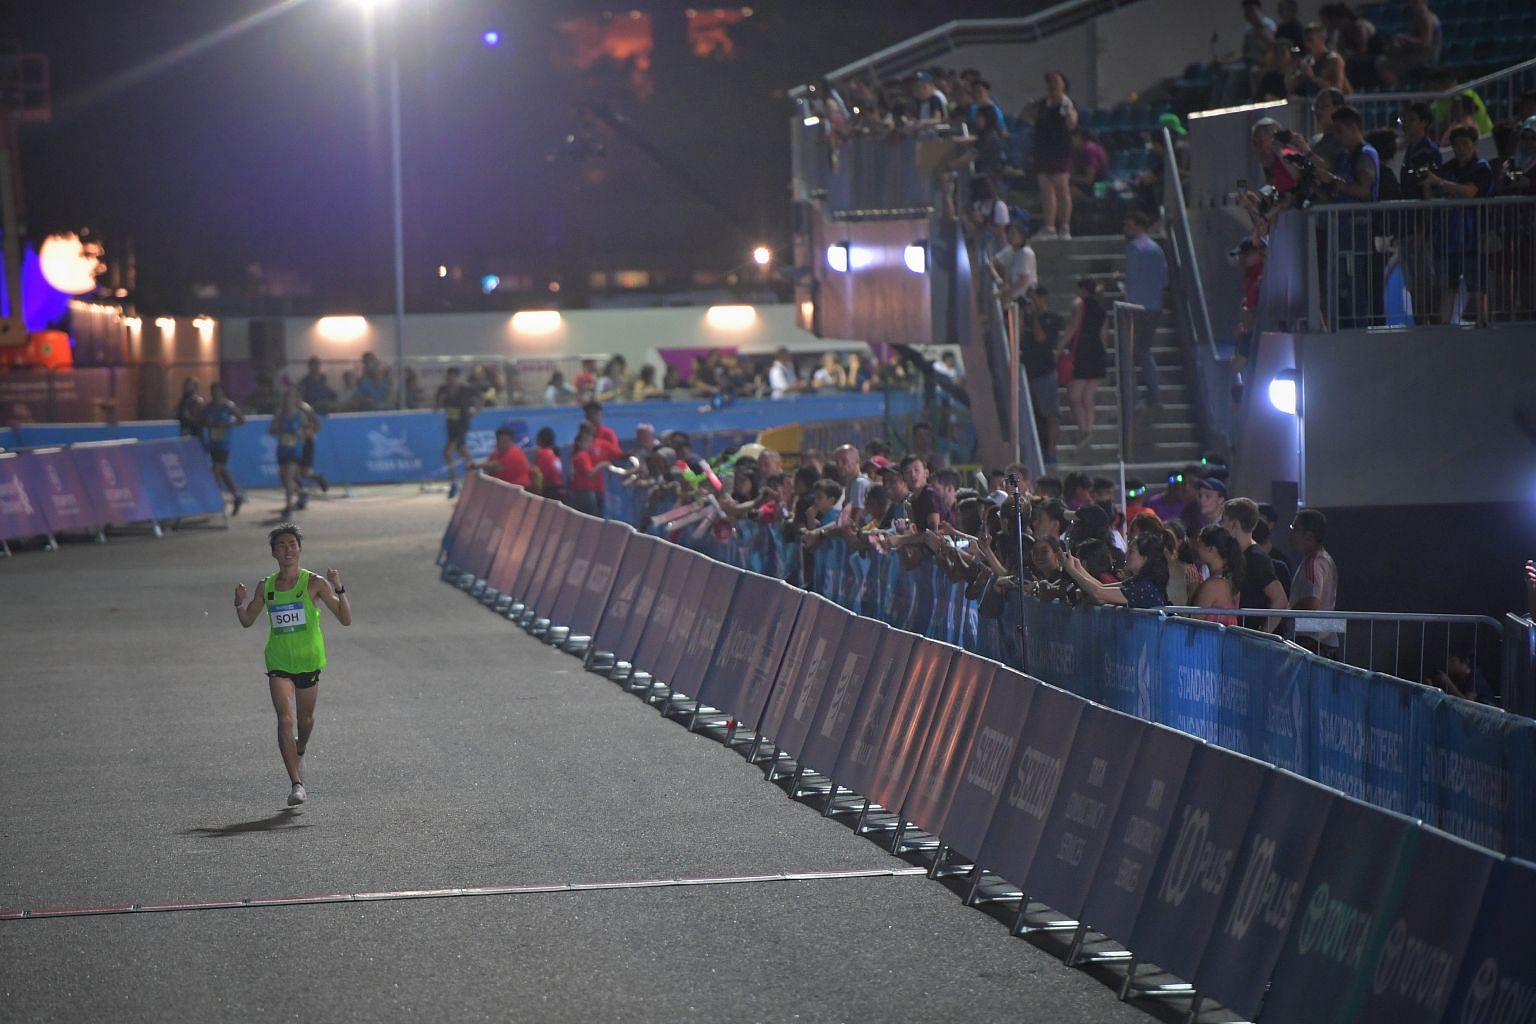 Soh Rui Yong finishing in 2hr 45min 52sec to complete his hat-trick of titles for local elite men.